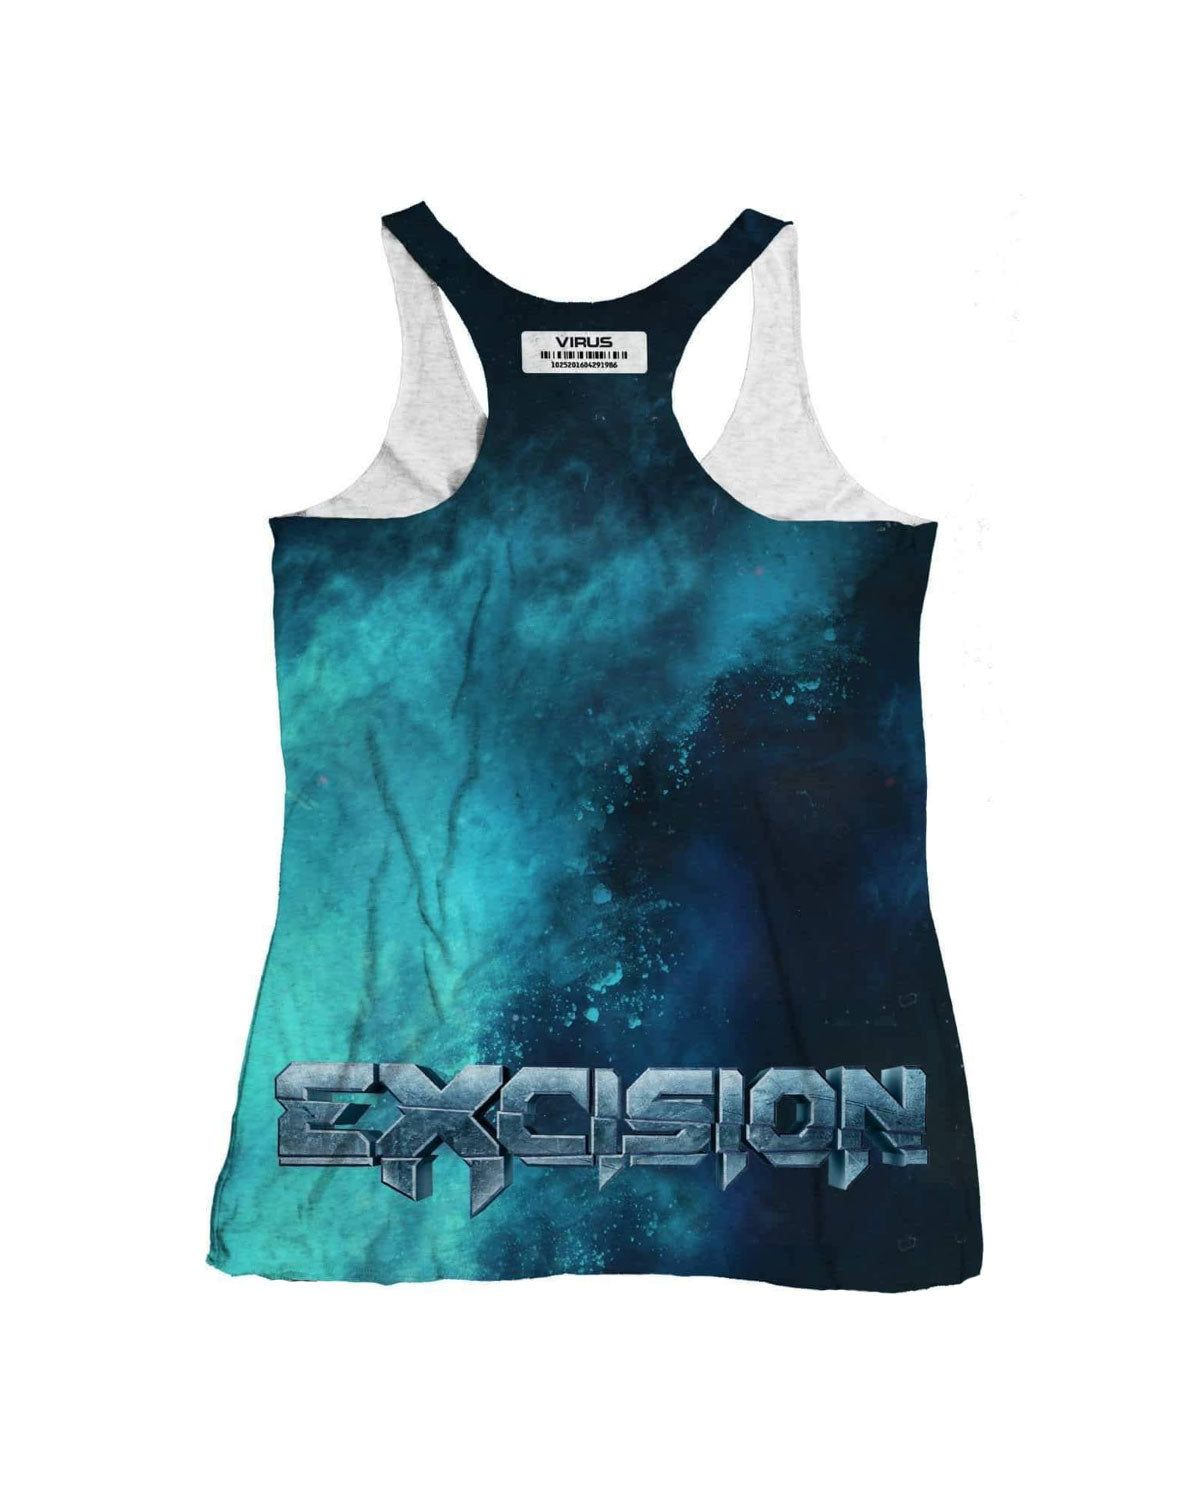 Excision Virus Racerback Tank Top